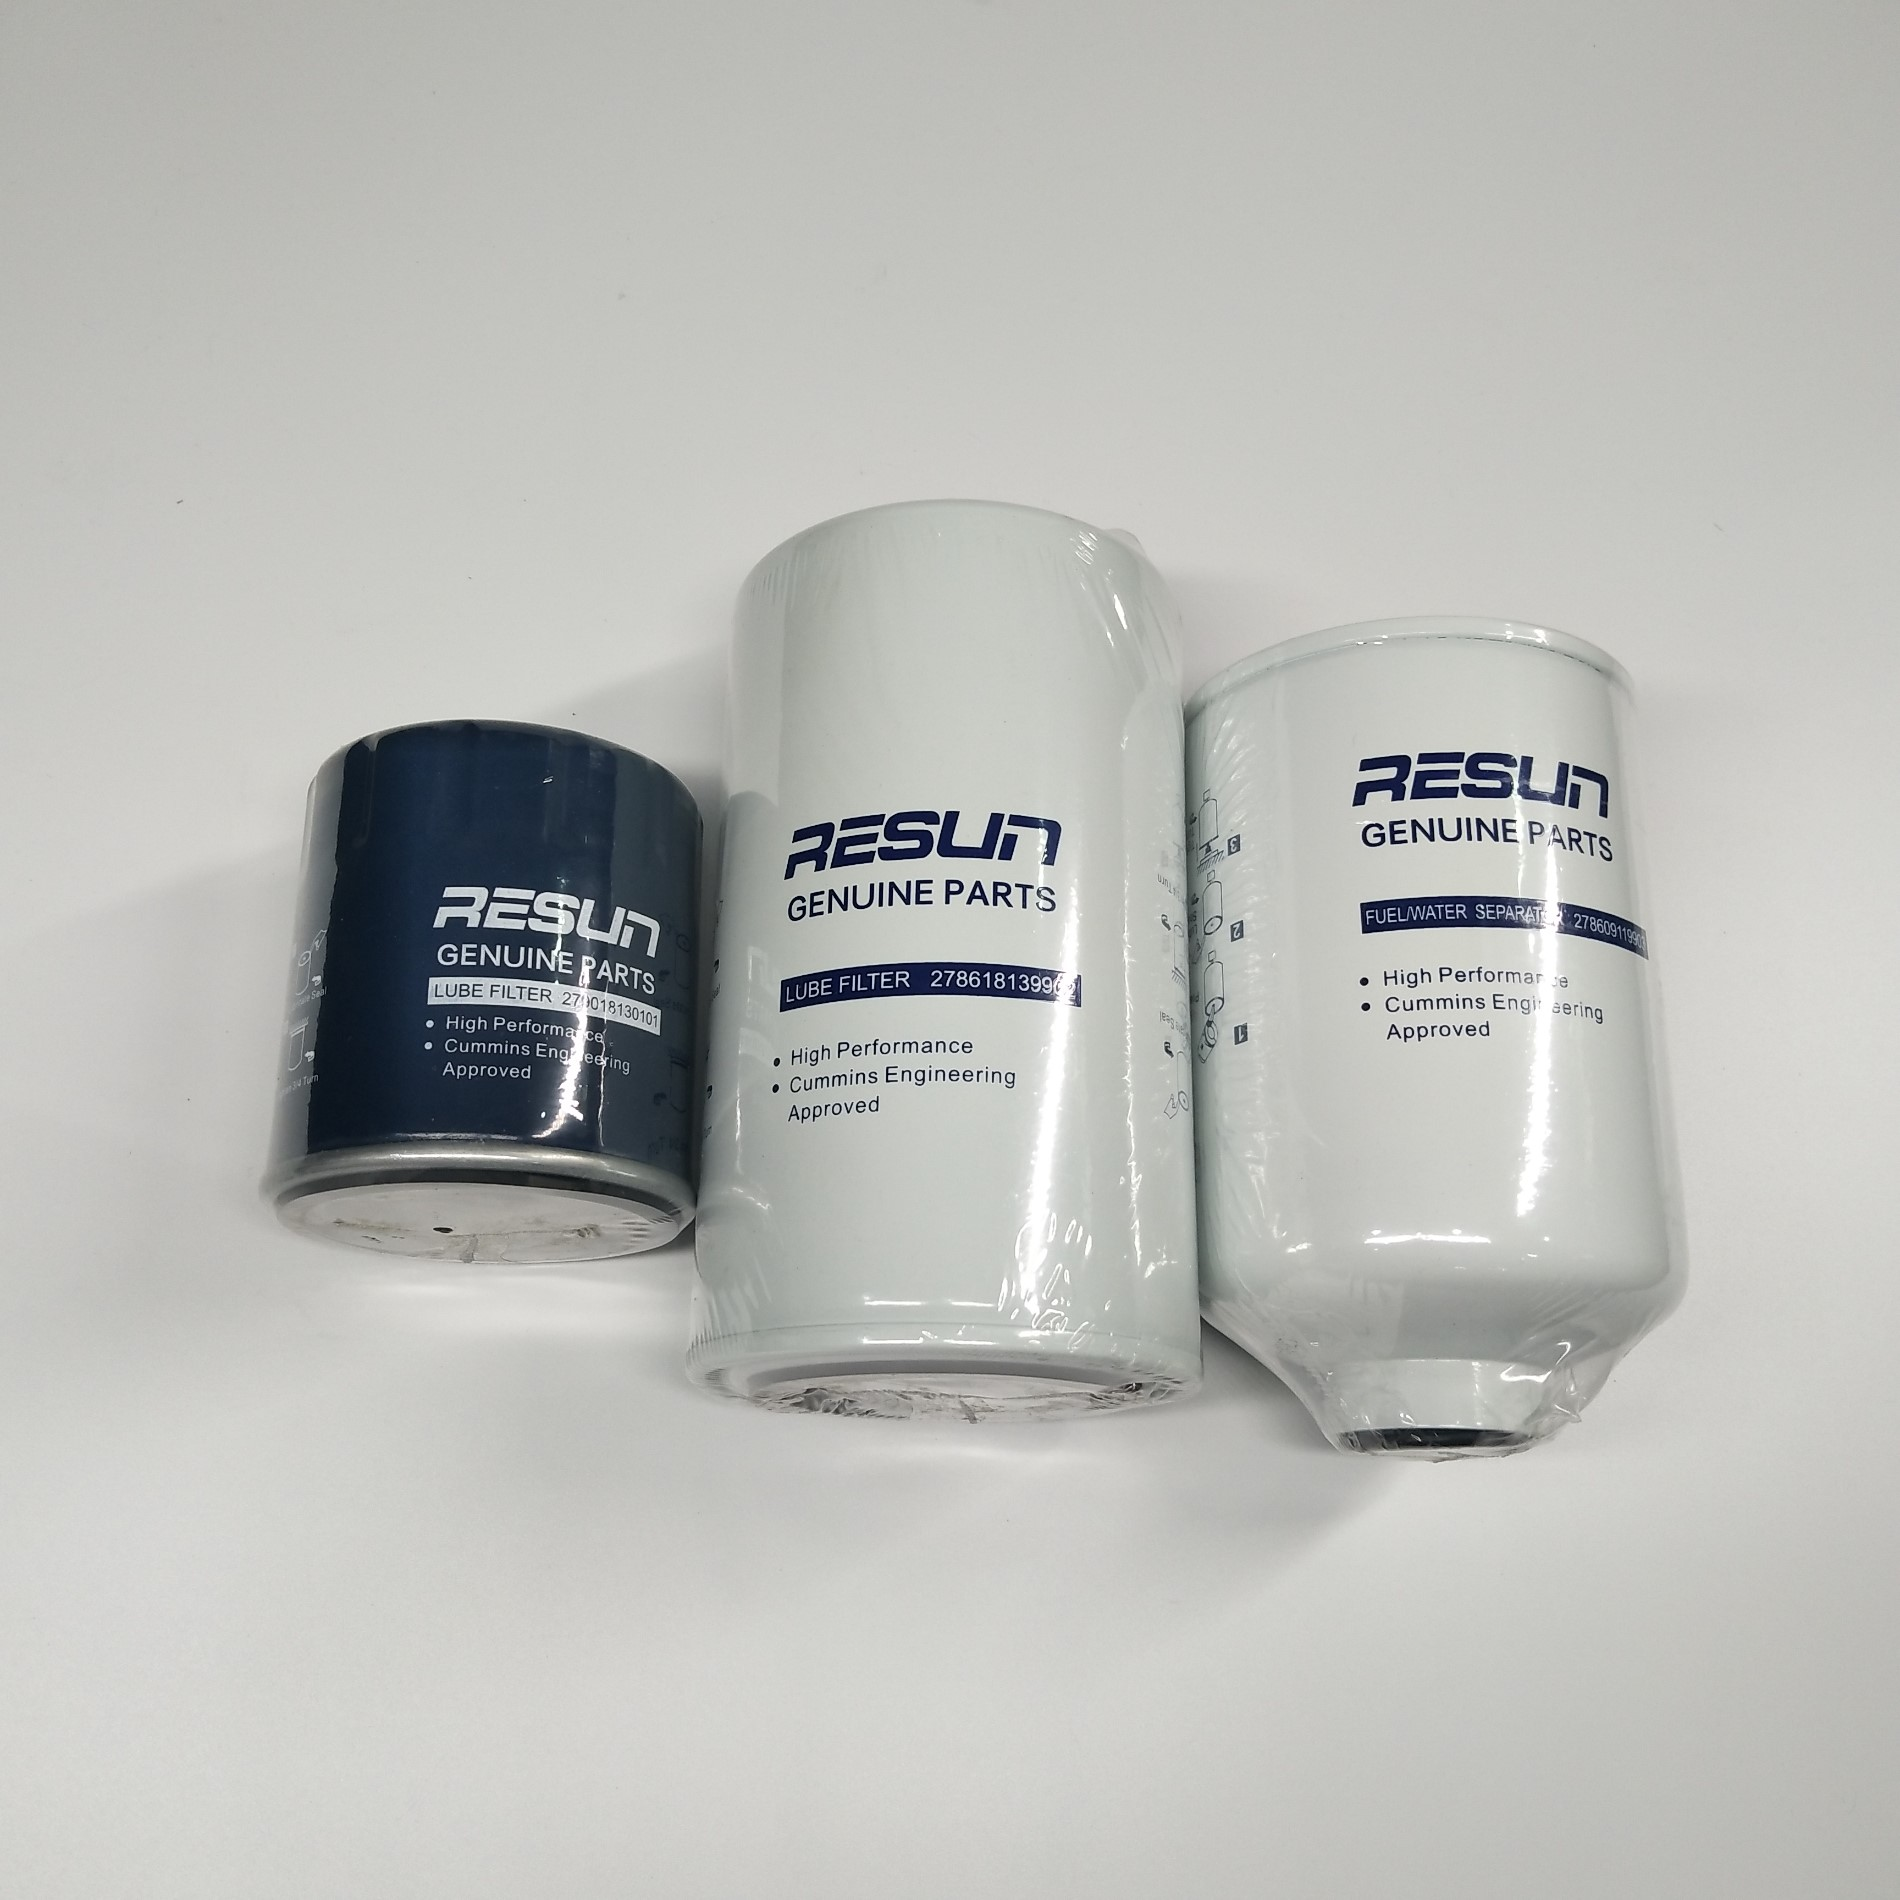 Supply Oil Filter For Passenger Cars And Trucks, Oil Filter For Passenger Cars And Trucks Factory Quotes, Oil Filter For Passenger Cars And Trucks Producers OEM